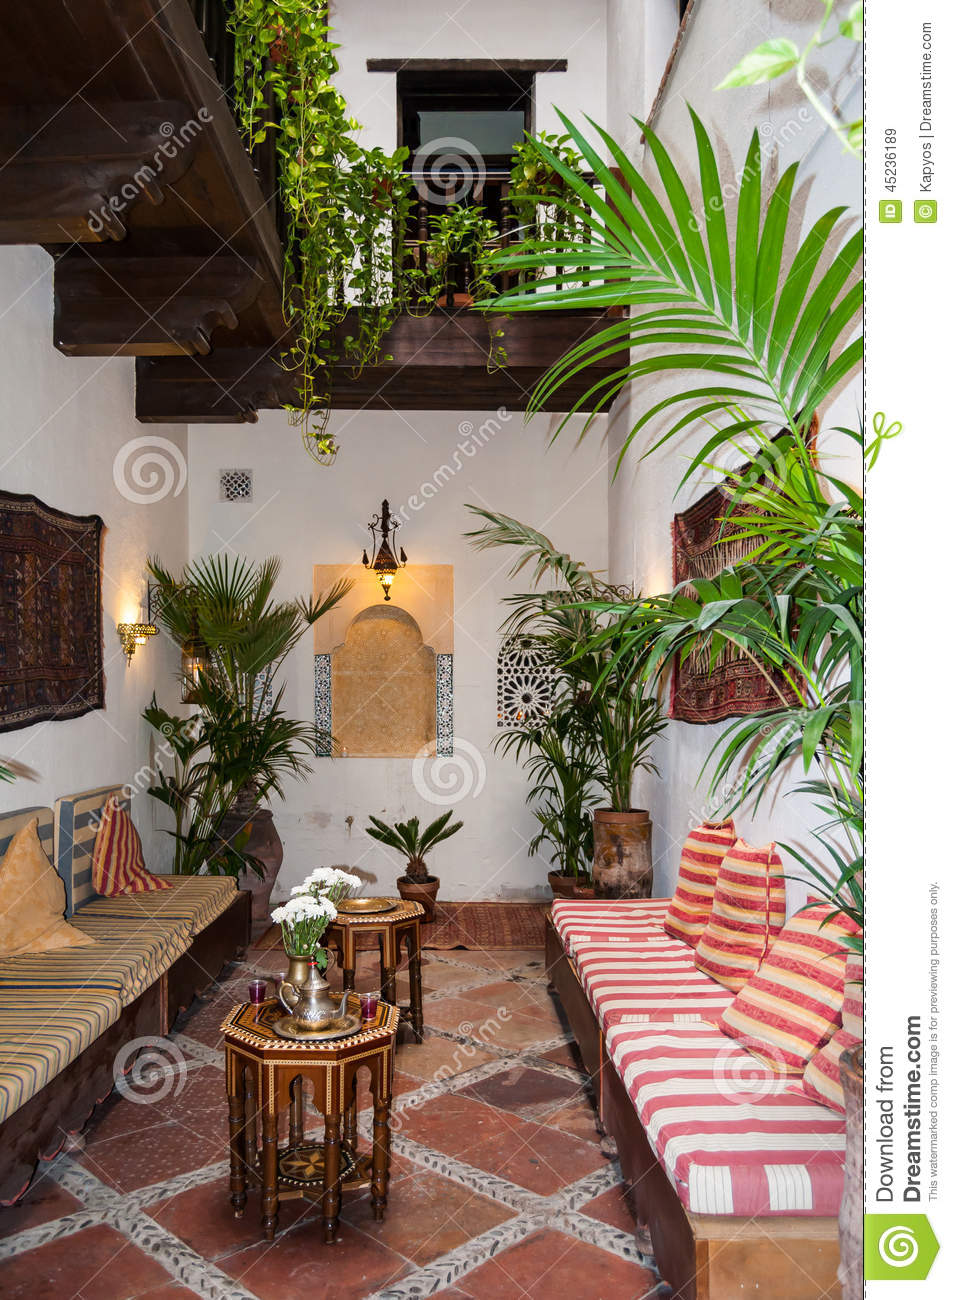 patio-granada-andalusian-arabic-style-45236189 Patio With A Courtyard Home Plans on home plans with carports, home plans with bars, home plans with greenhouses, home plans with casitas, home plans with windows, home plans with balconies, home plans with conservatories, home plans with foyers, home plans with atriums, home plans with towers, home plans with verandas, home plans with views, home plans with lanais, home plans with pools, home plans blueprint, home plans with motor courts, home plans with porticos, home plans with furniture, home plans with library, home plans with elevators,